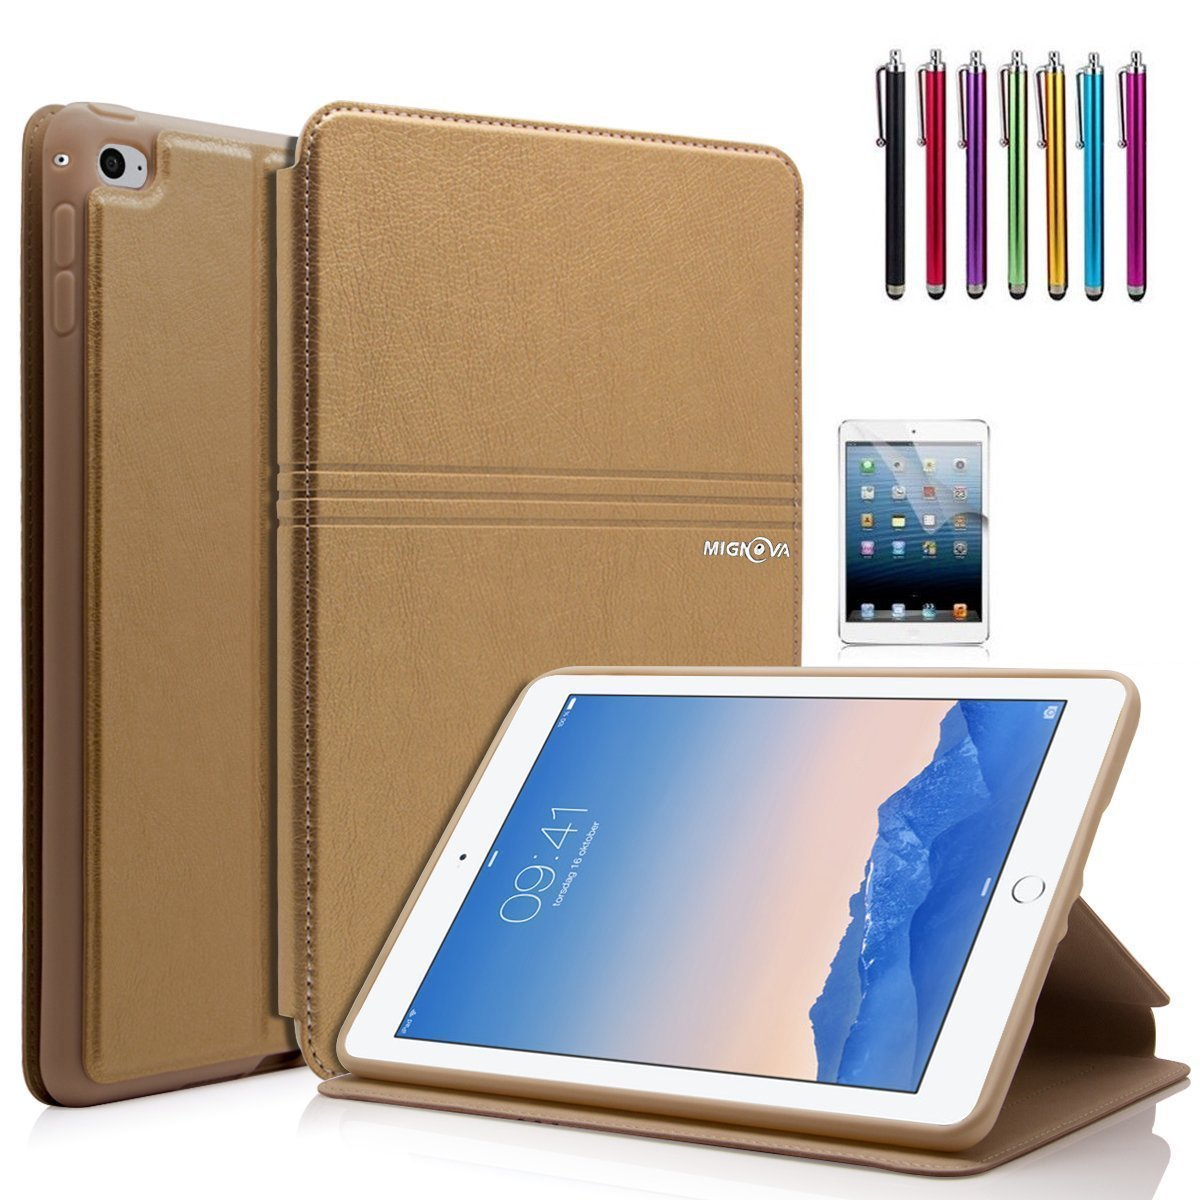 Mignova iPad Mini 4 Case - Ultra Slim Lightweight Smart Stand Cover Case With Auto Wake / Sleep for Apple iPad Mini 4 (2015 edition) 7.9 inch Tablet (2nd Gold)